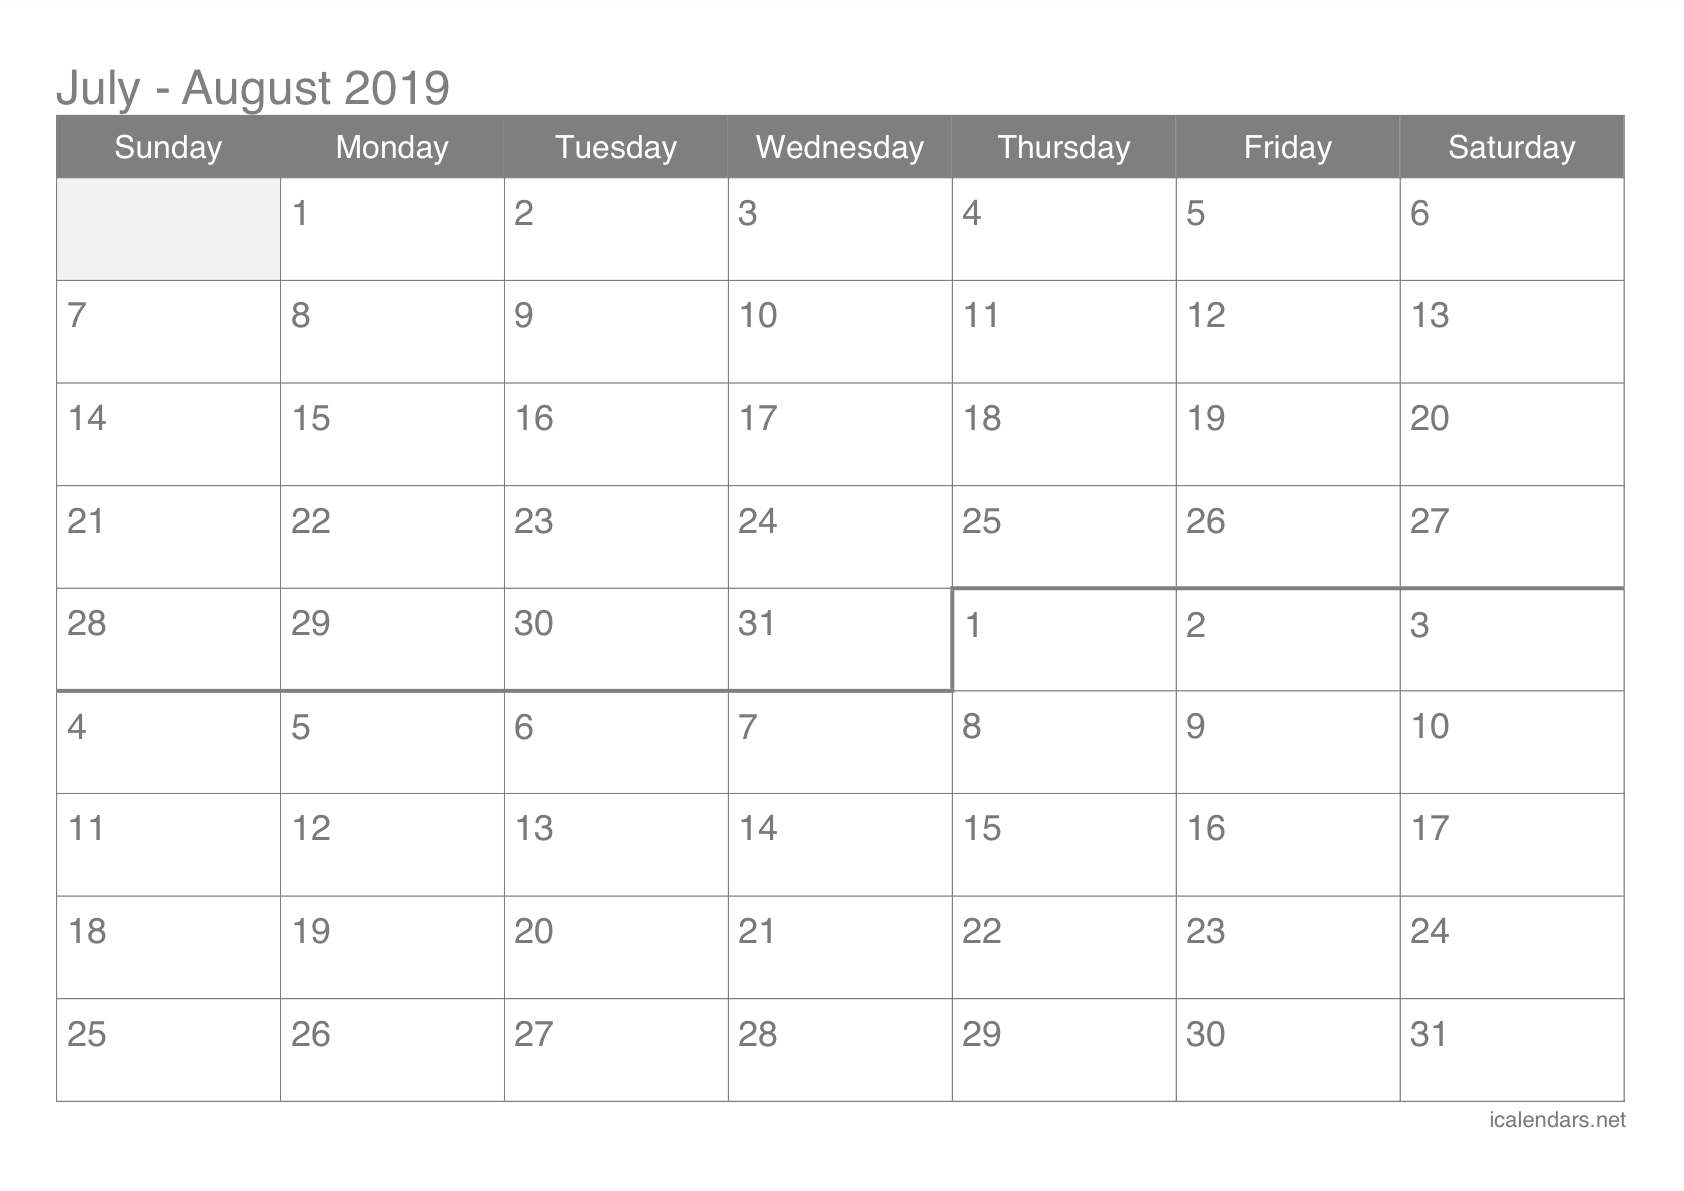 July And August 2019 Printable Calendar - Icalendars inside June And July Monthly Calendar